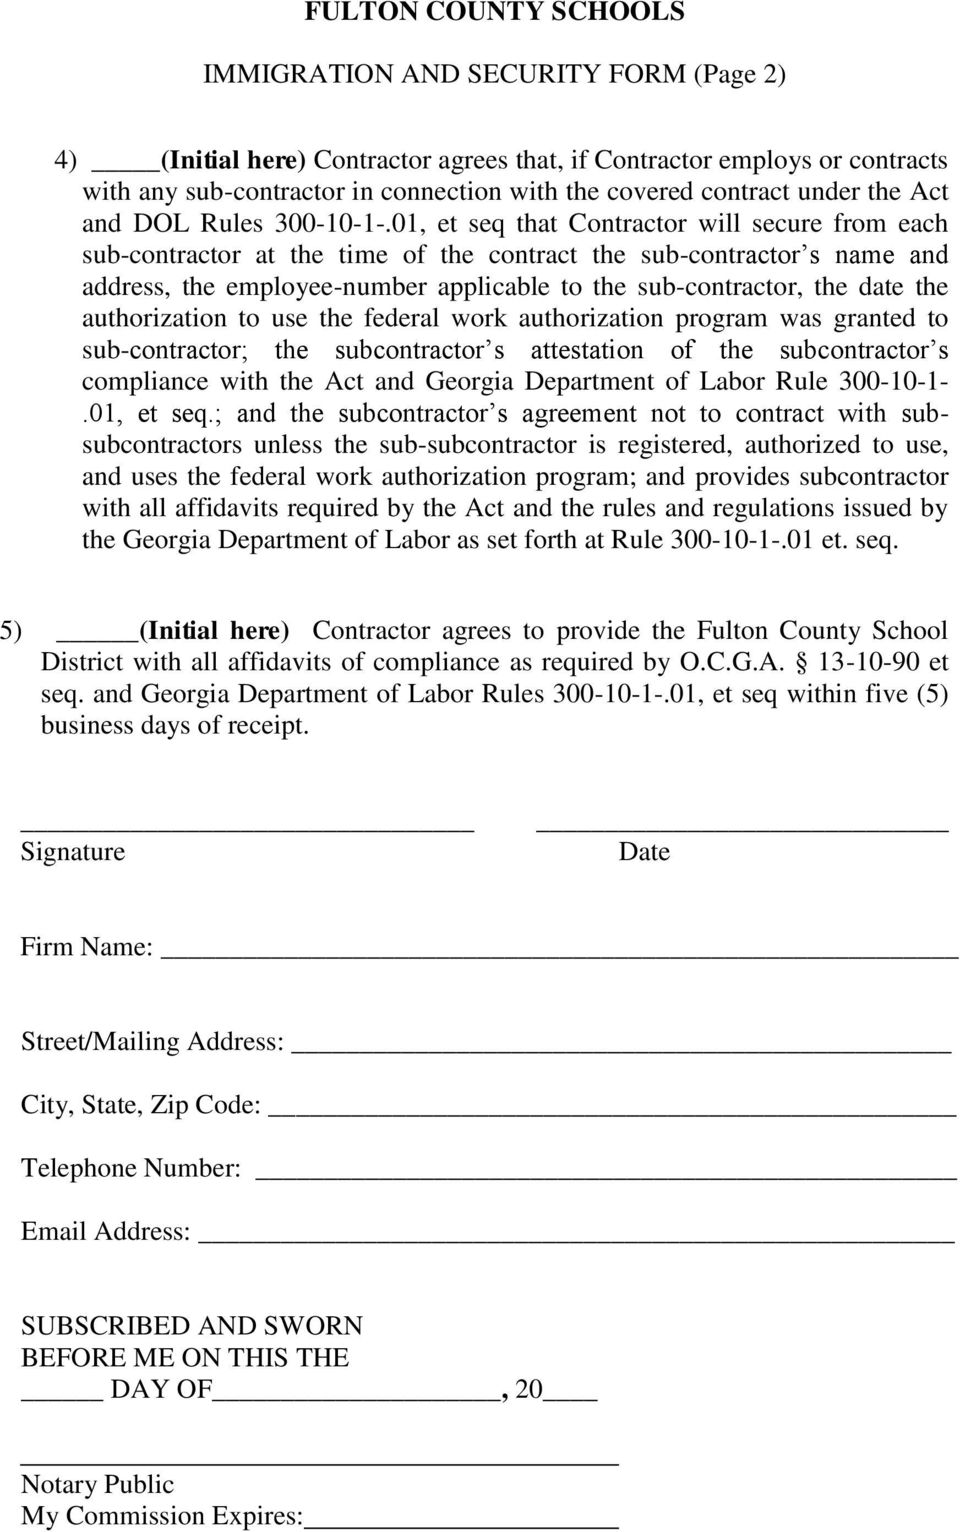 FULTON COUNTY SCHOOLS IMMIGRATION AND SECURITY FORM - PDF